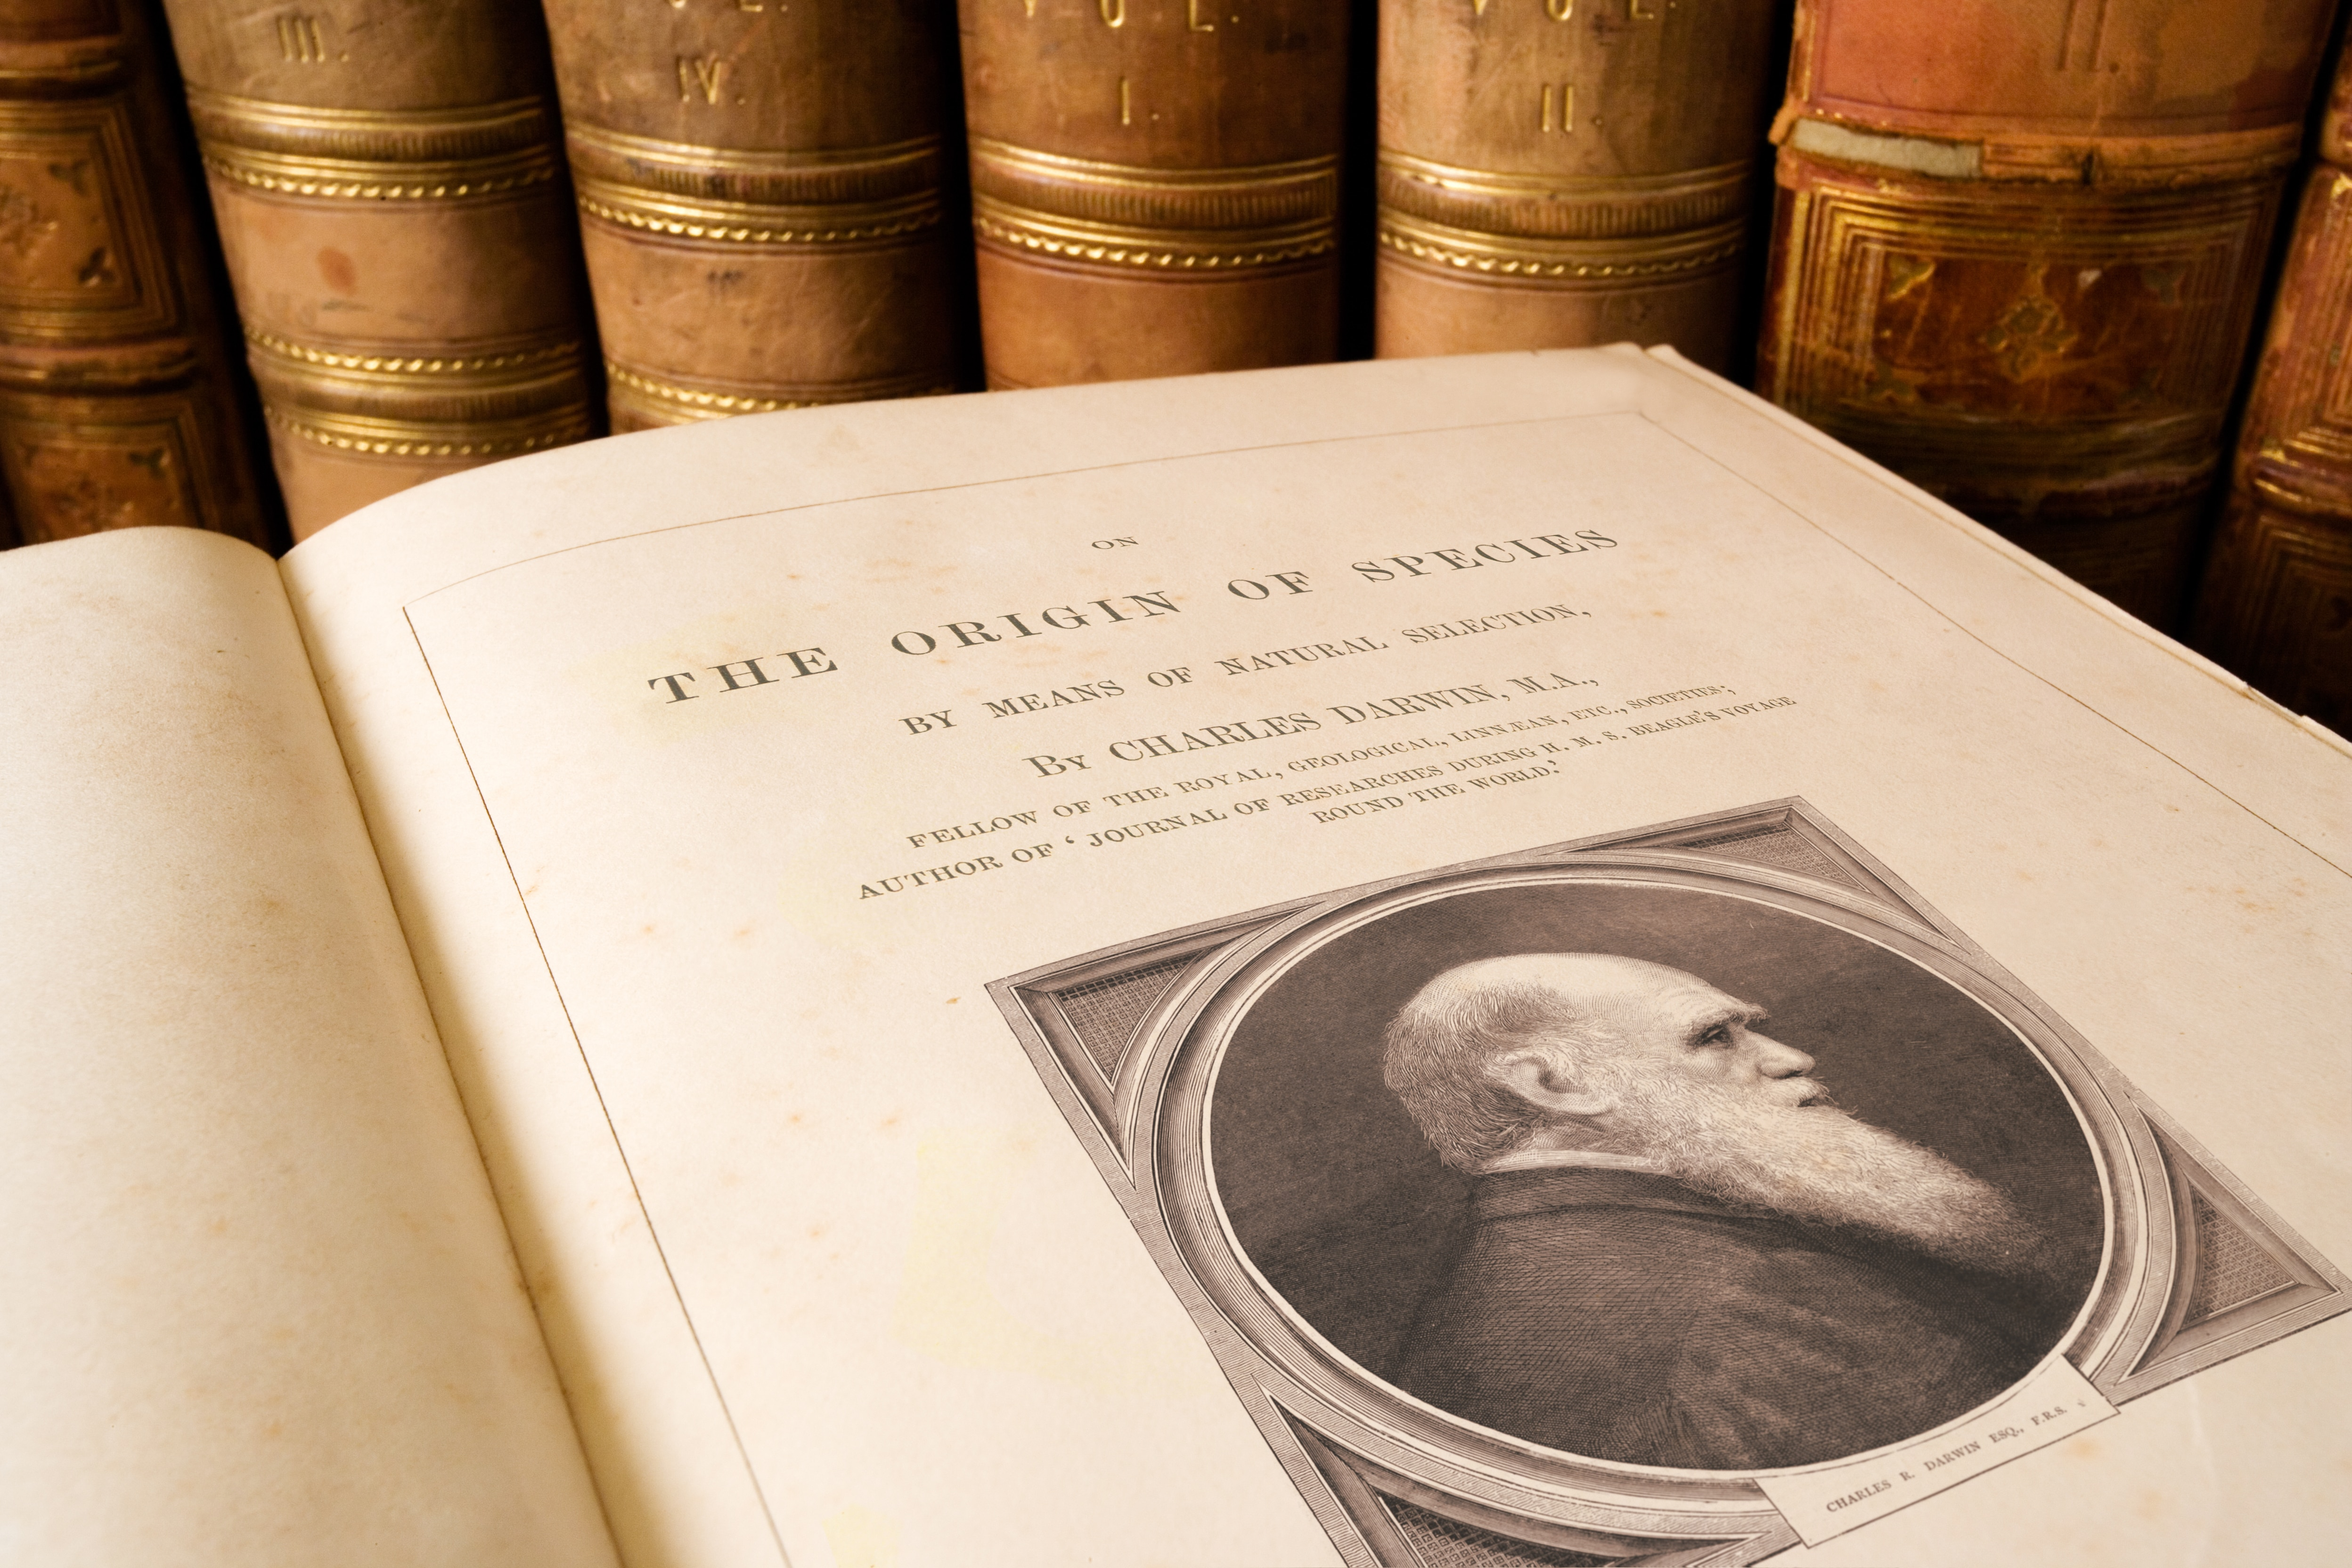 Origin of Species book by Charles Darwin